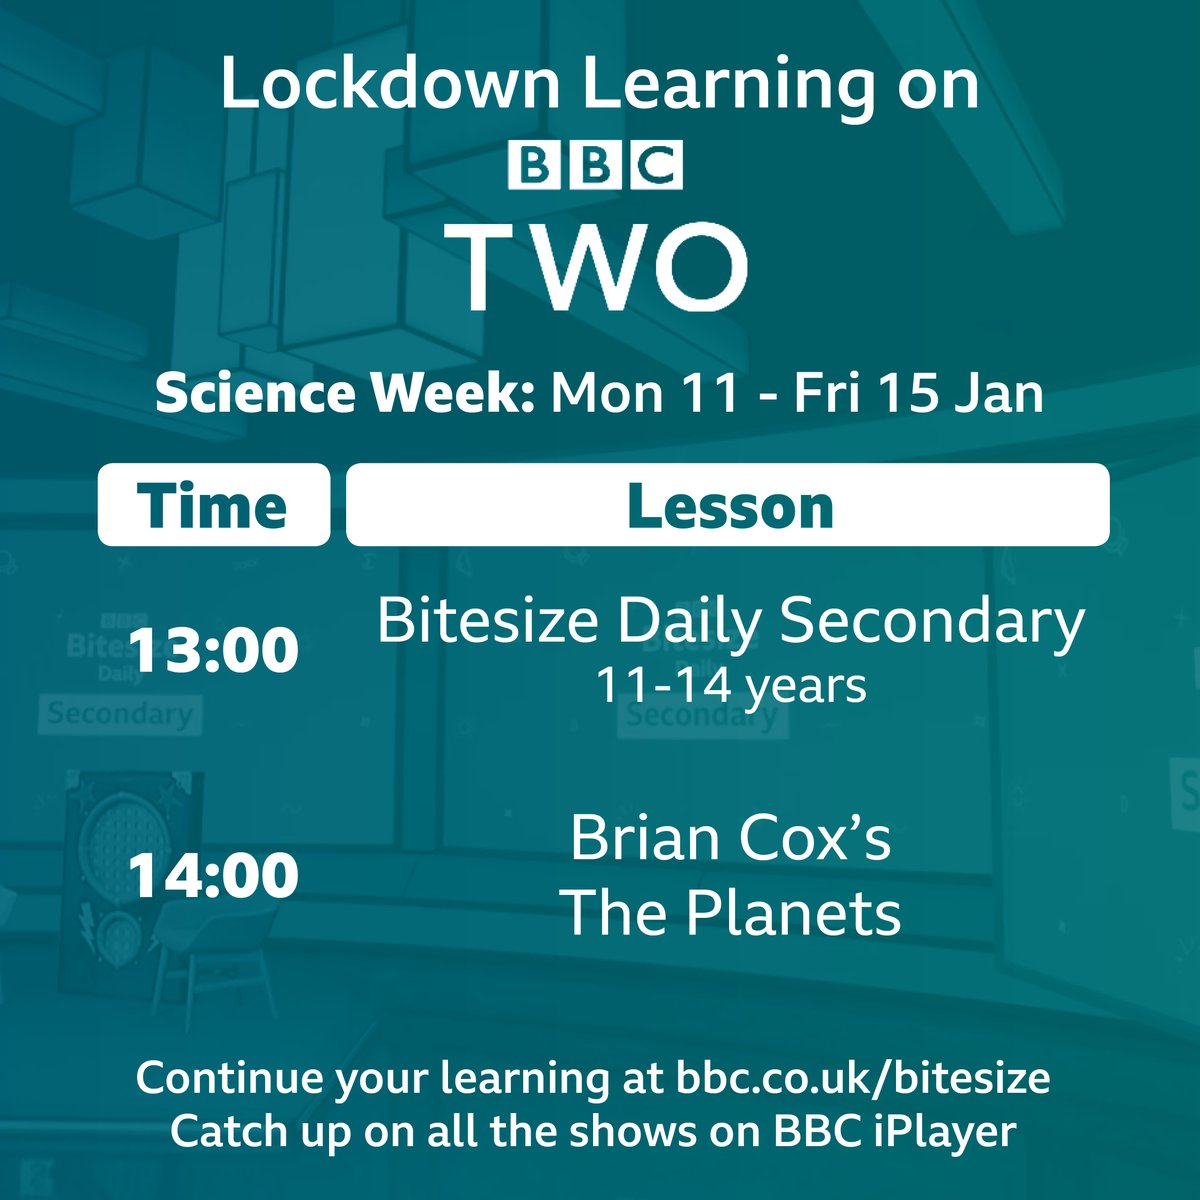 The BBC are making learning available for every child, of every age, every day of the week. See below for details of the BBC's Week 1 Lockdown Learning on @BBCTwo & @BBCiPlayer with @bbcbitesize.